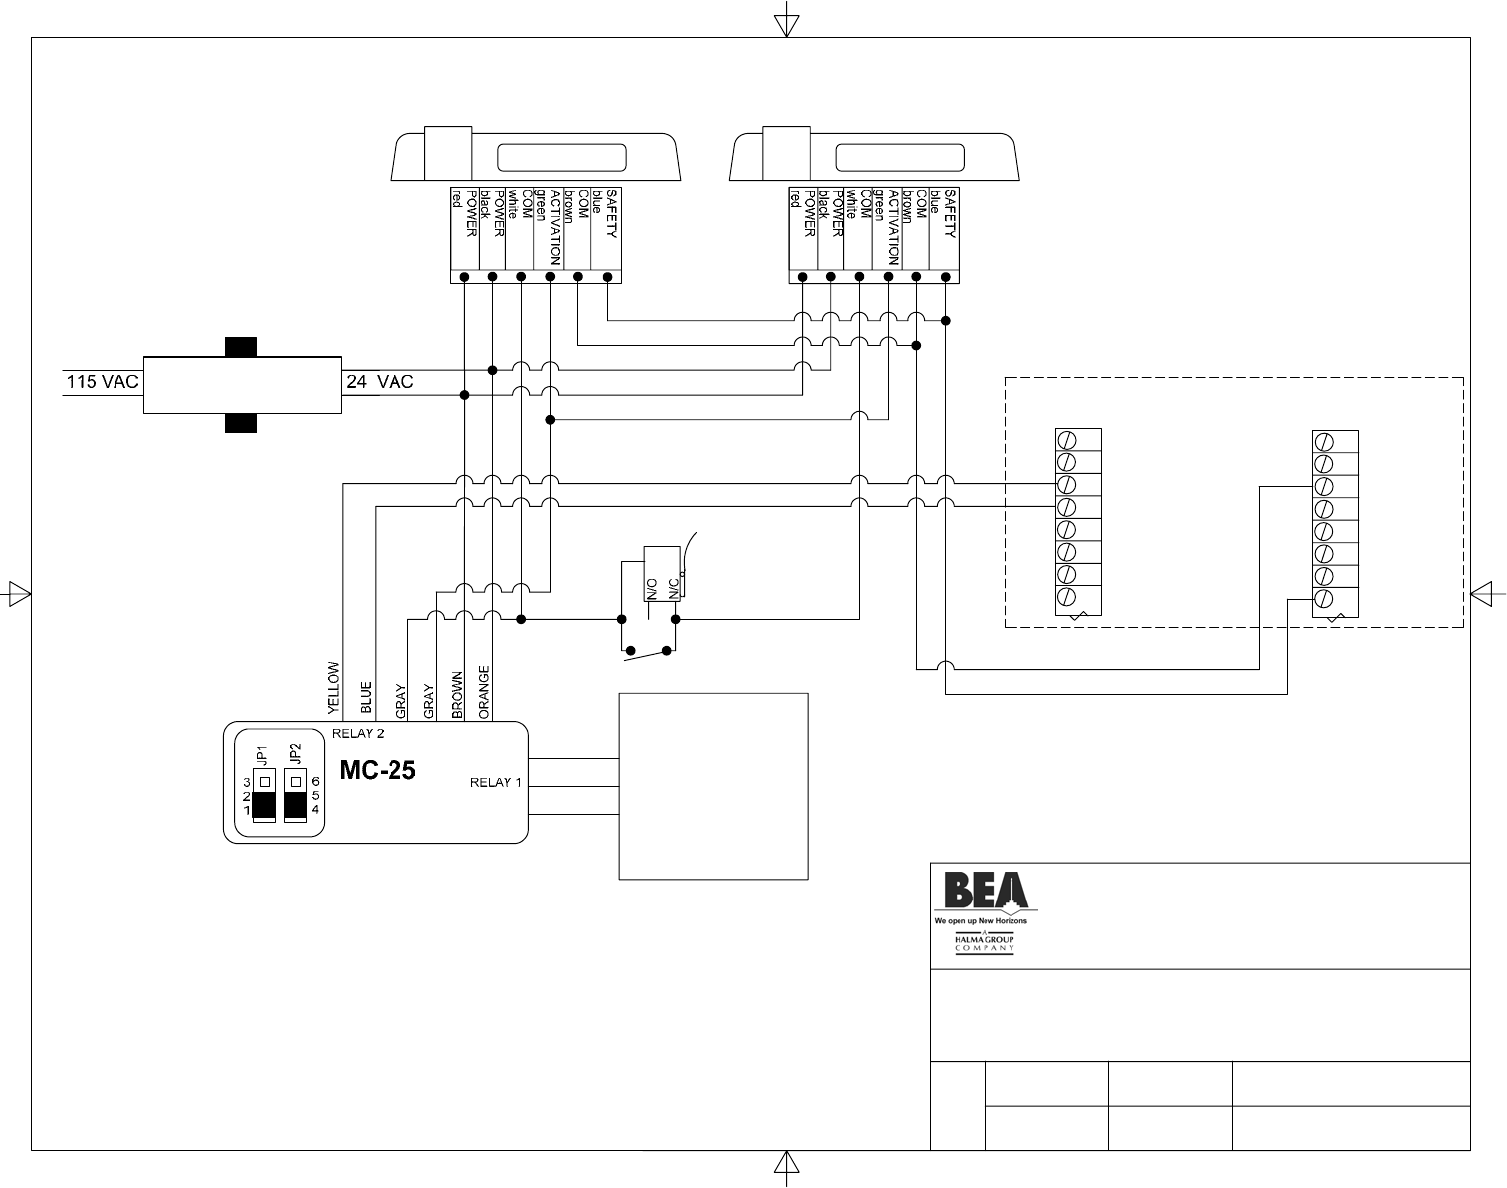 Bea Ixio Wiring Diagram : 23 Wiring Diagram Images